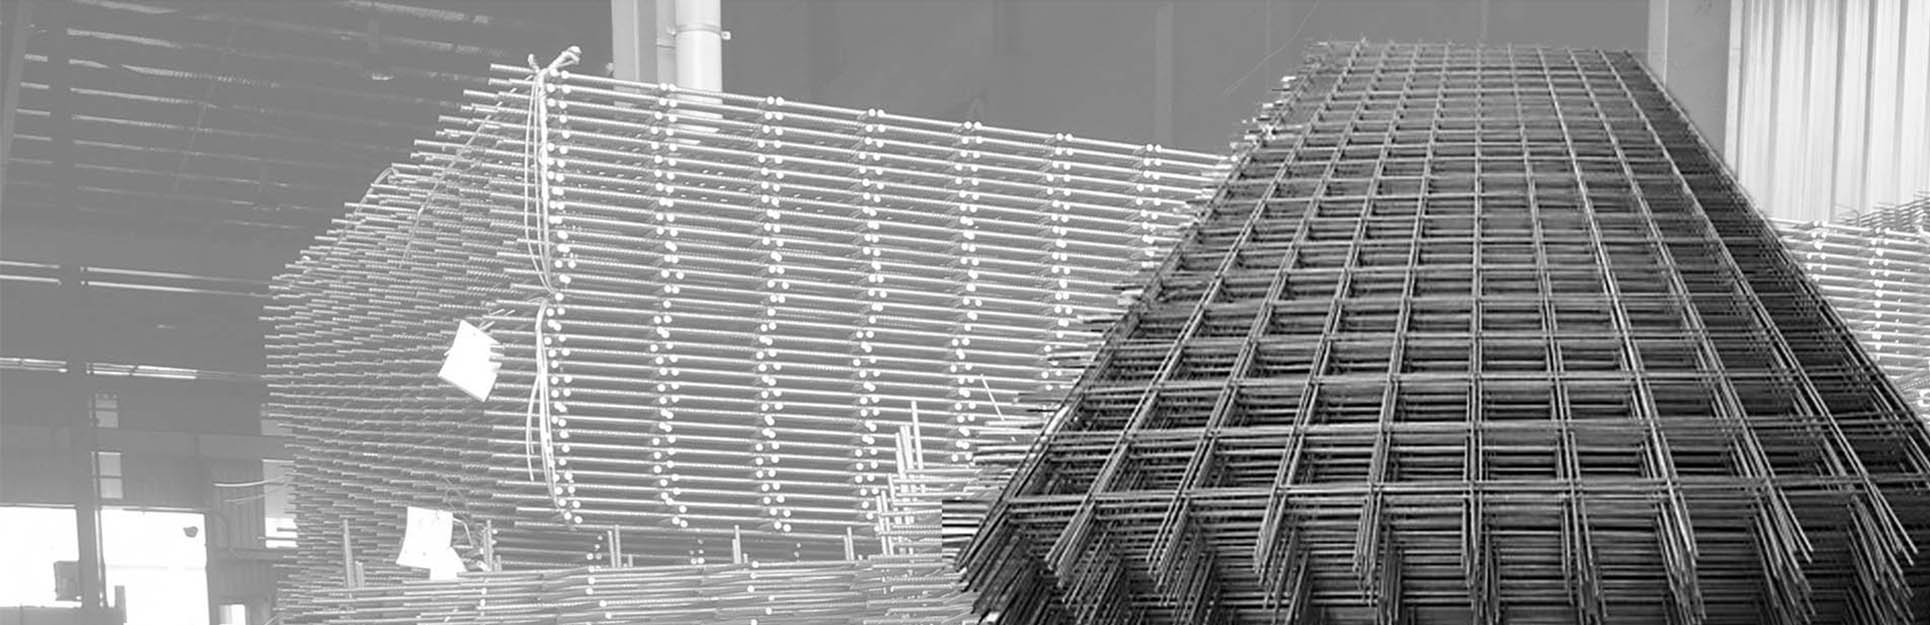 RM REO MESH, REINFORCING WIRE MESH, MESH REINFORCEMENT FOR CONCRETE